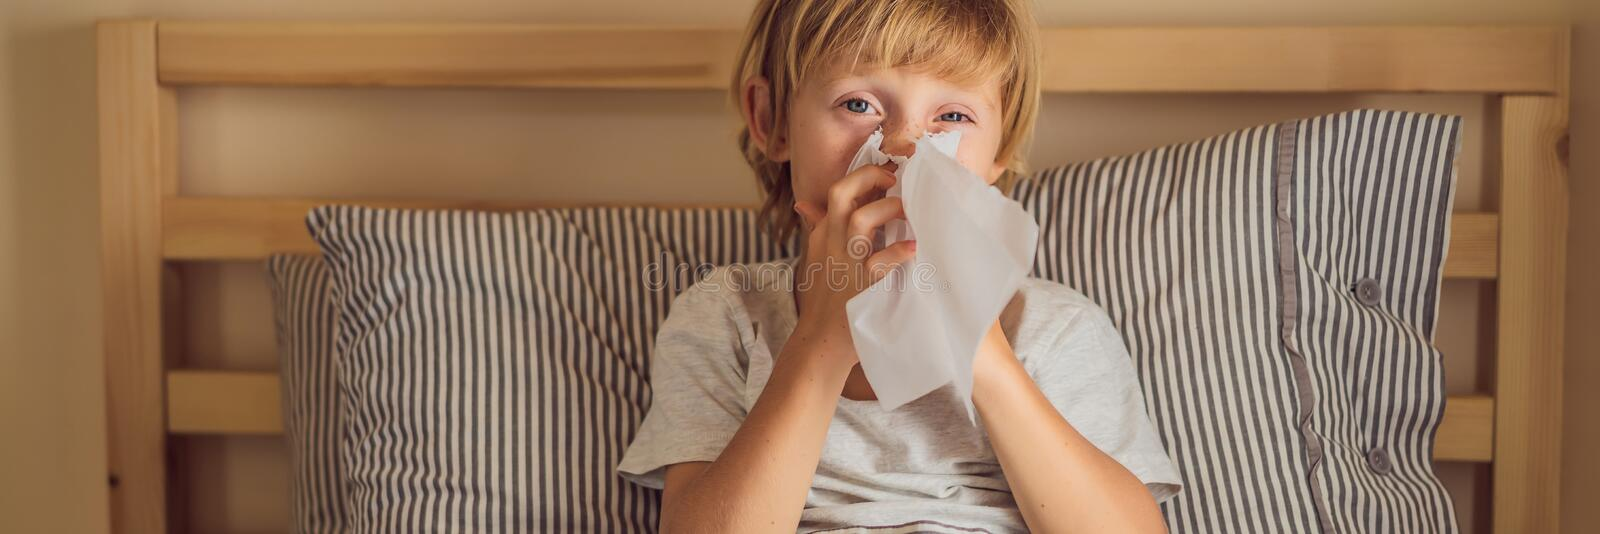 Sick boy coughs and wipes his nose with wipes. Sick child with fever and illness in bed BANNER, LONG FORMAT. Sick boy coughs and wipes his nose with wipes. Sick royalty free stock photo